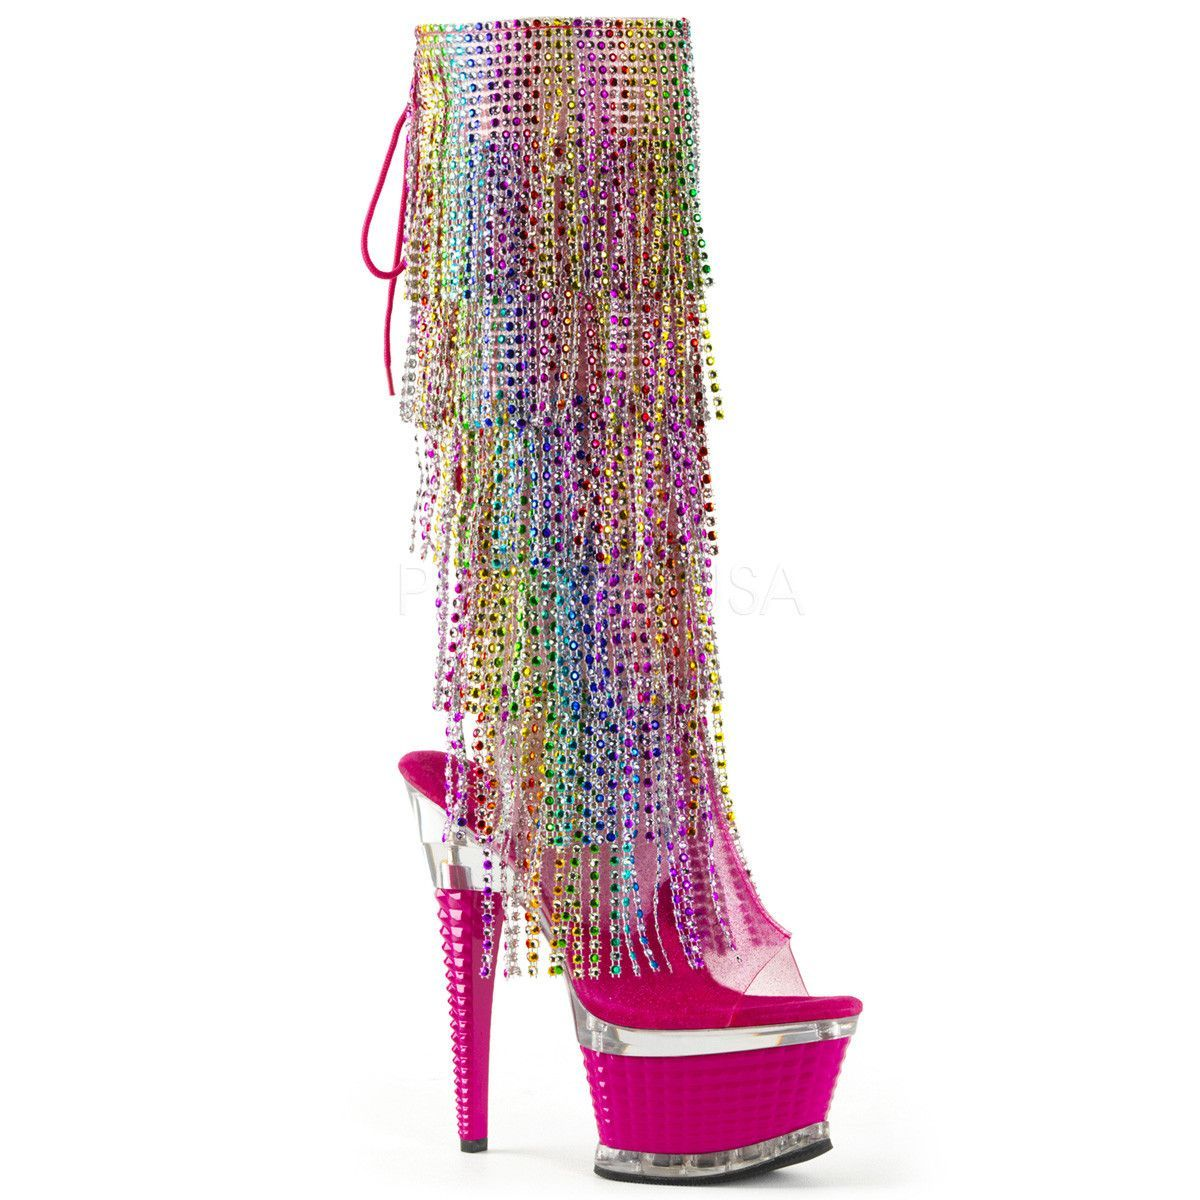 b3a7bbad0b08 Totally Wicked Footwear - Pleaser Illusion 2017 RSF Rainbow Fringe Platform  Knee Boot